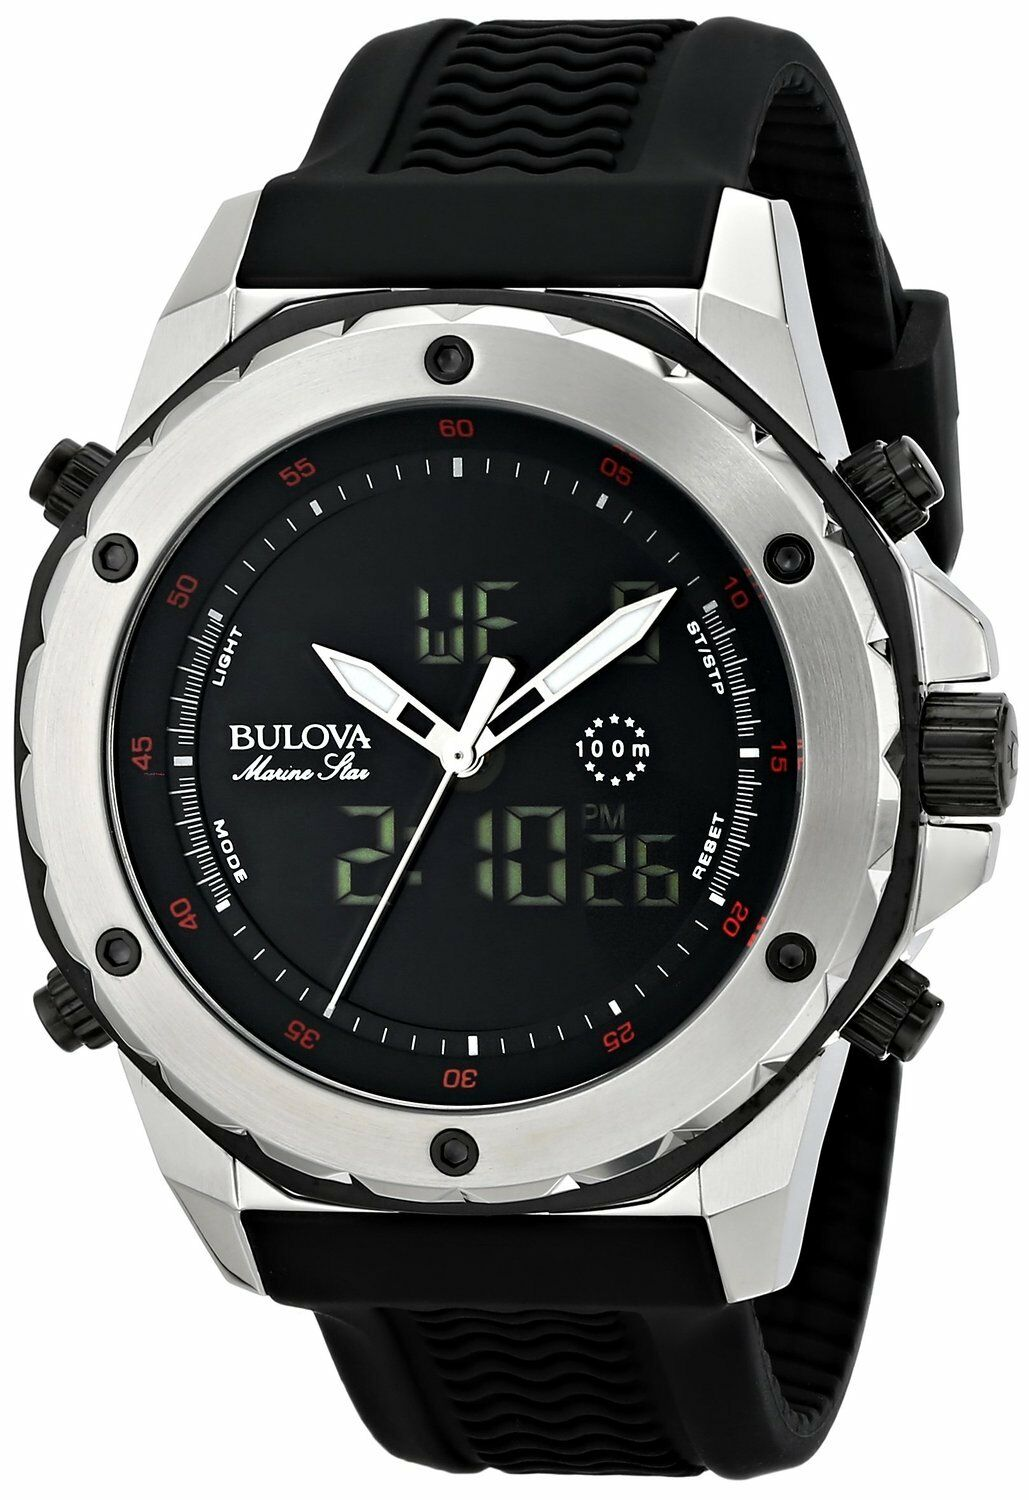 Bulova Men's 98C119 Stainless Steel Watch with Black Rubber Band